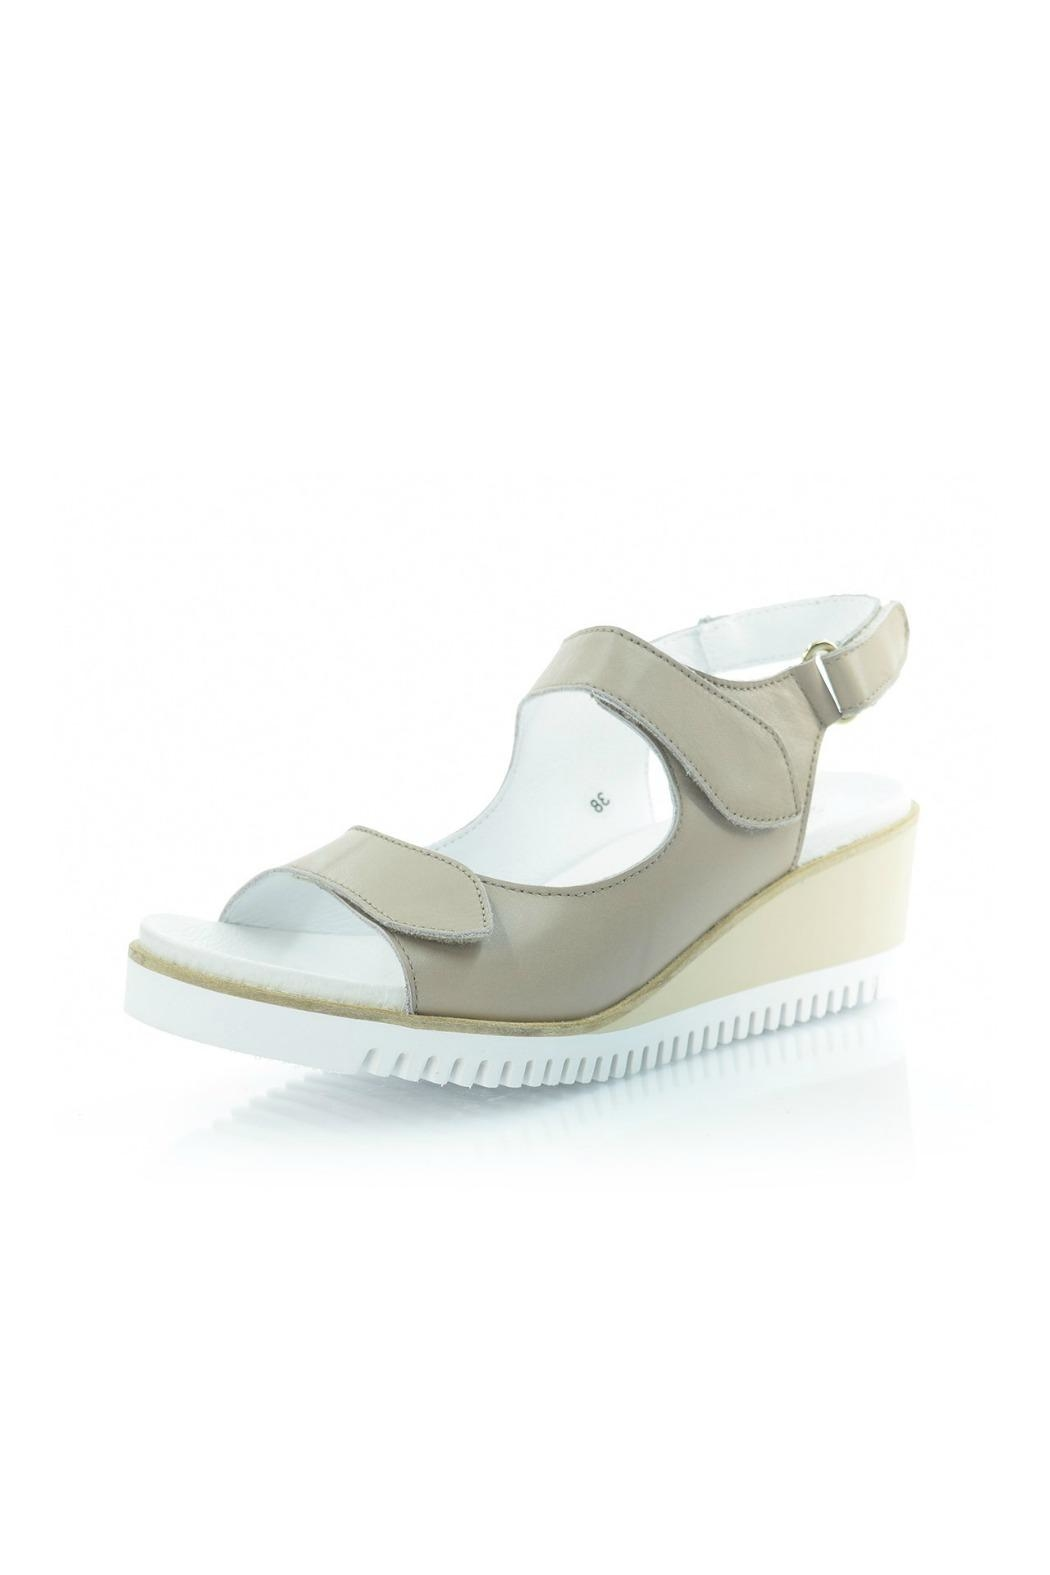 Sabrinas Beige Leather Sandal - Main Image